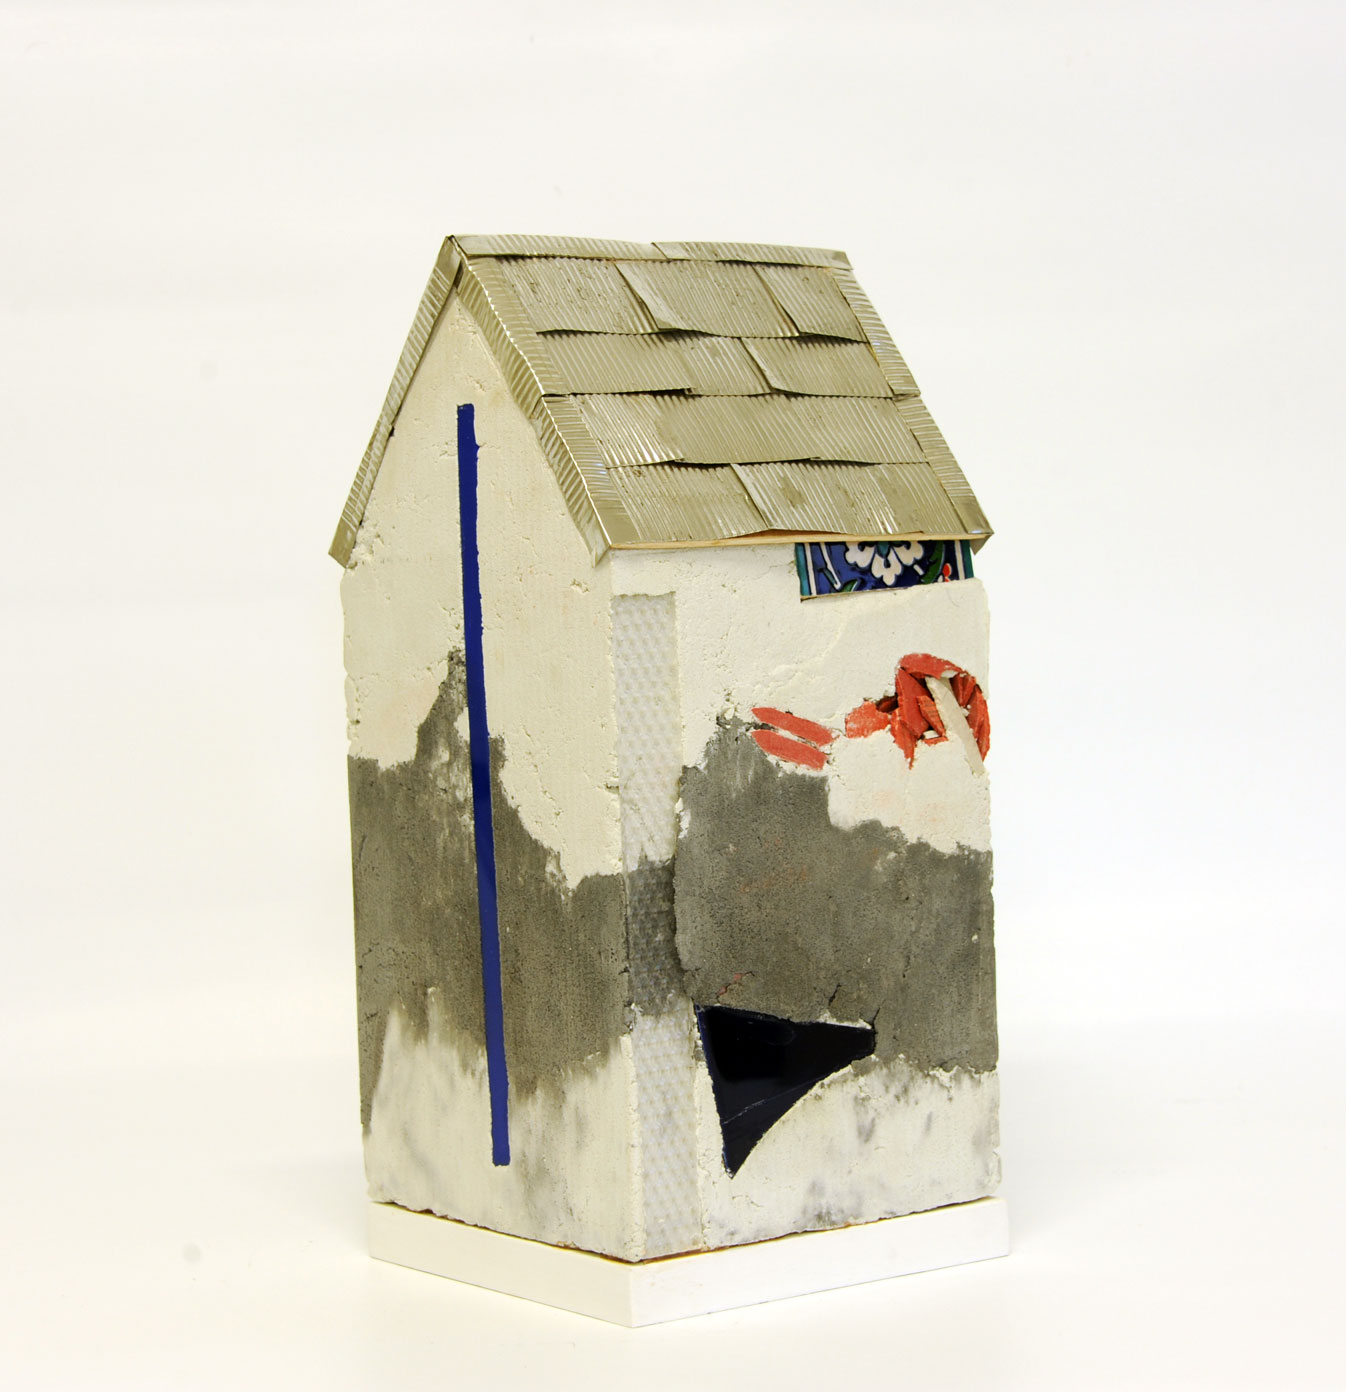 """Mnemonic House #1"" view 2 Reconstructed building remnants and found objects and photograph cast in concrete form 41x20x20cm"